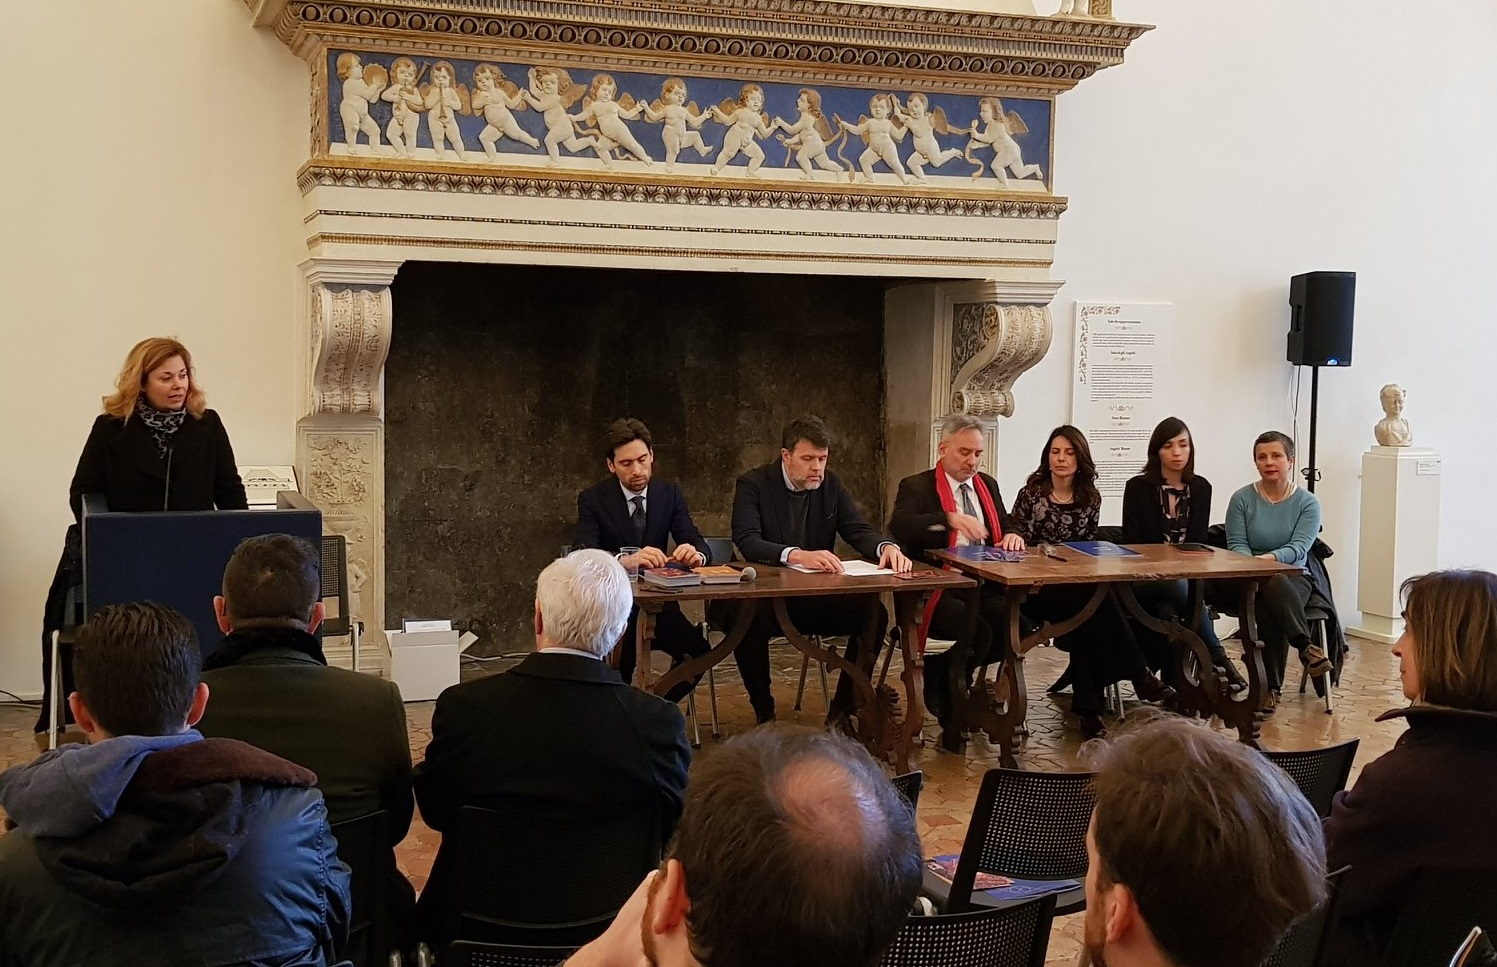 Conferenza stampa 23.12.2019